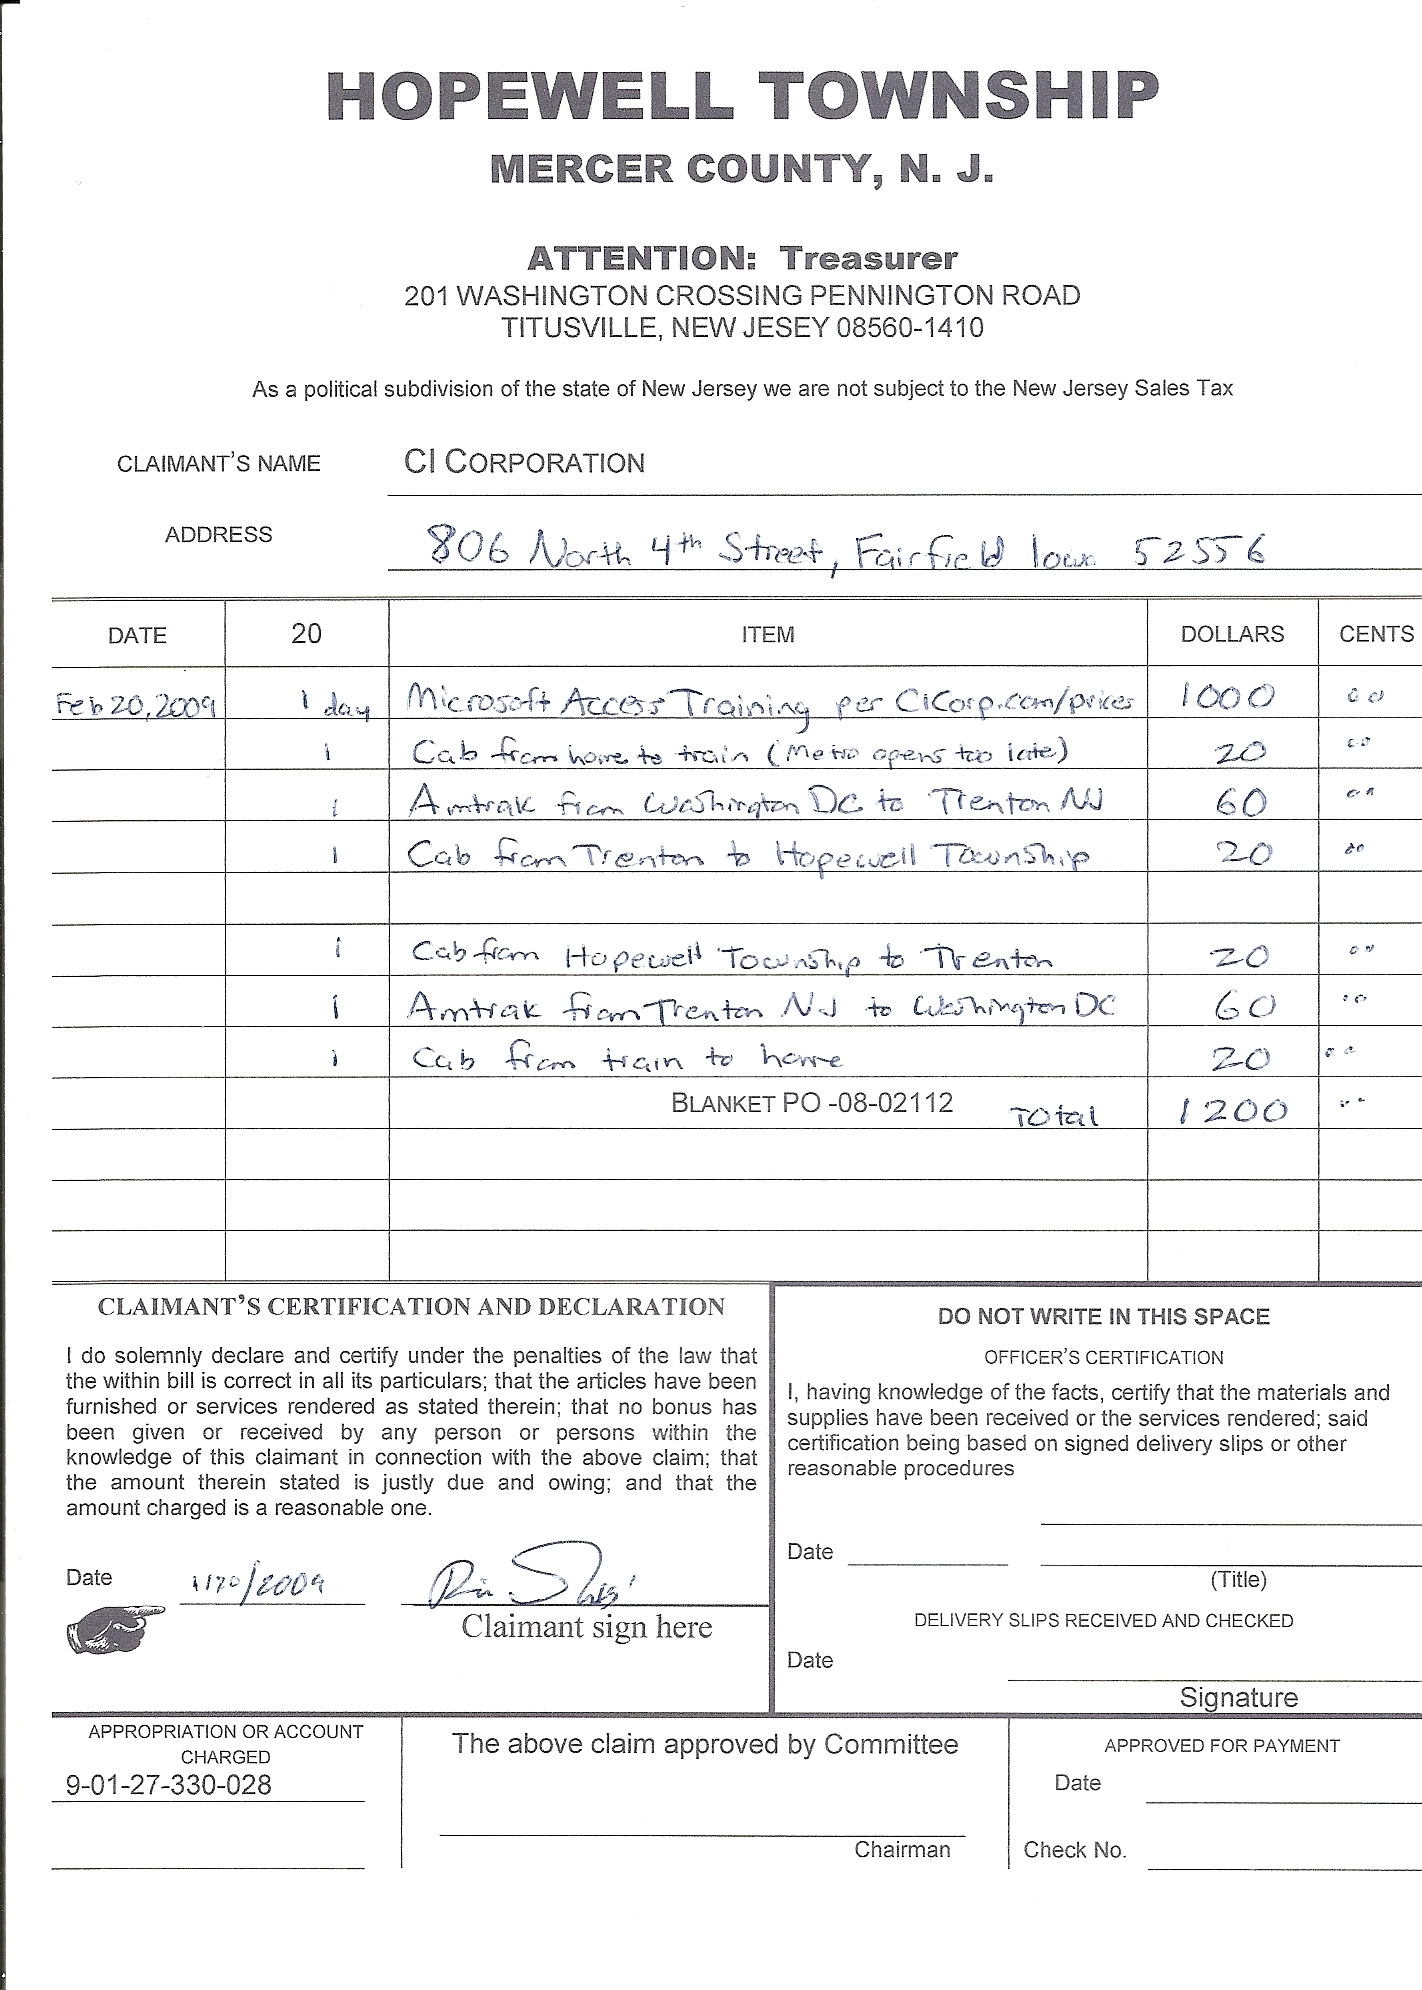 purchase order invoice template new page 1 1422 X 1990